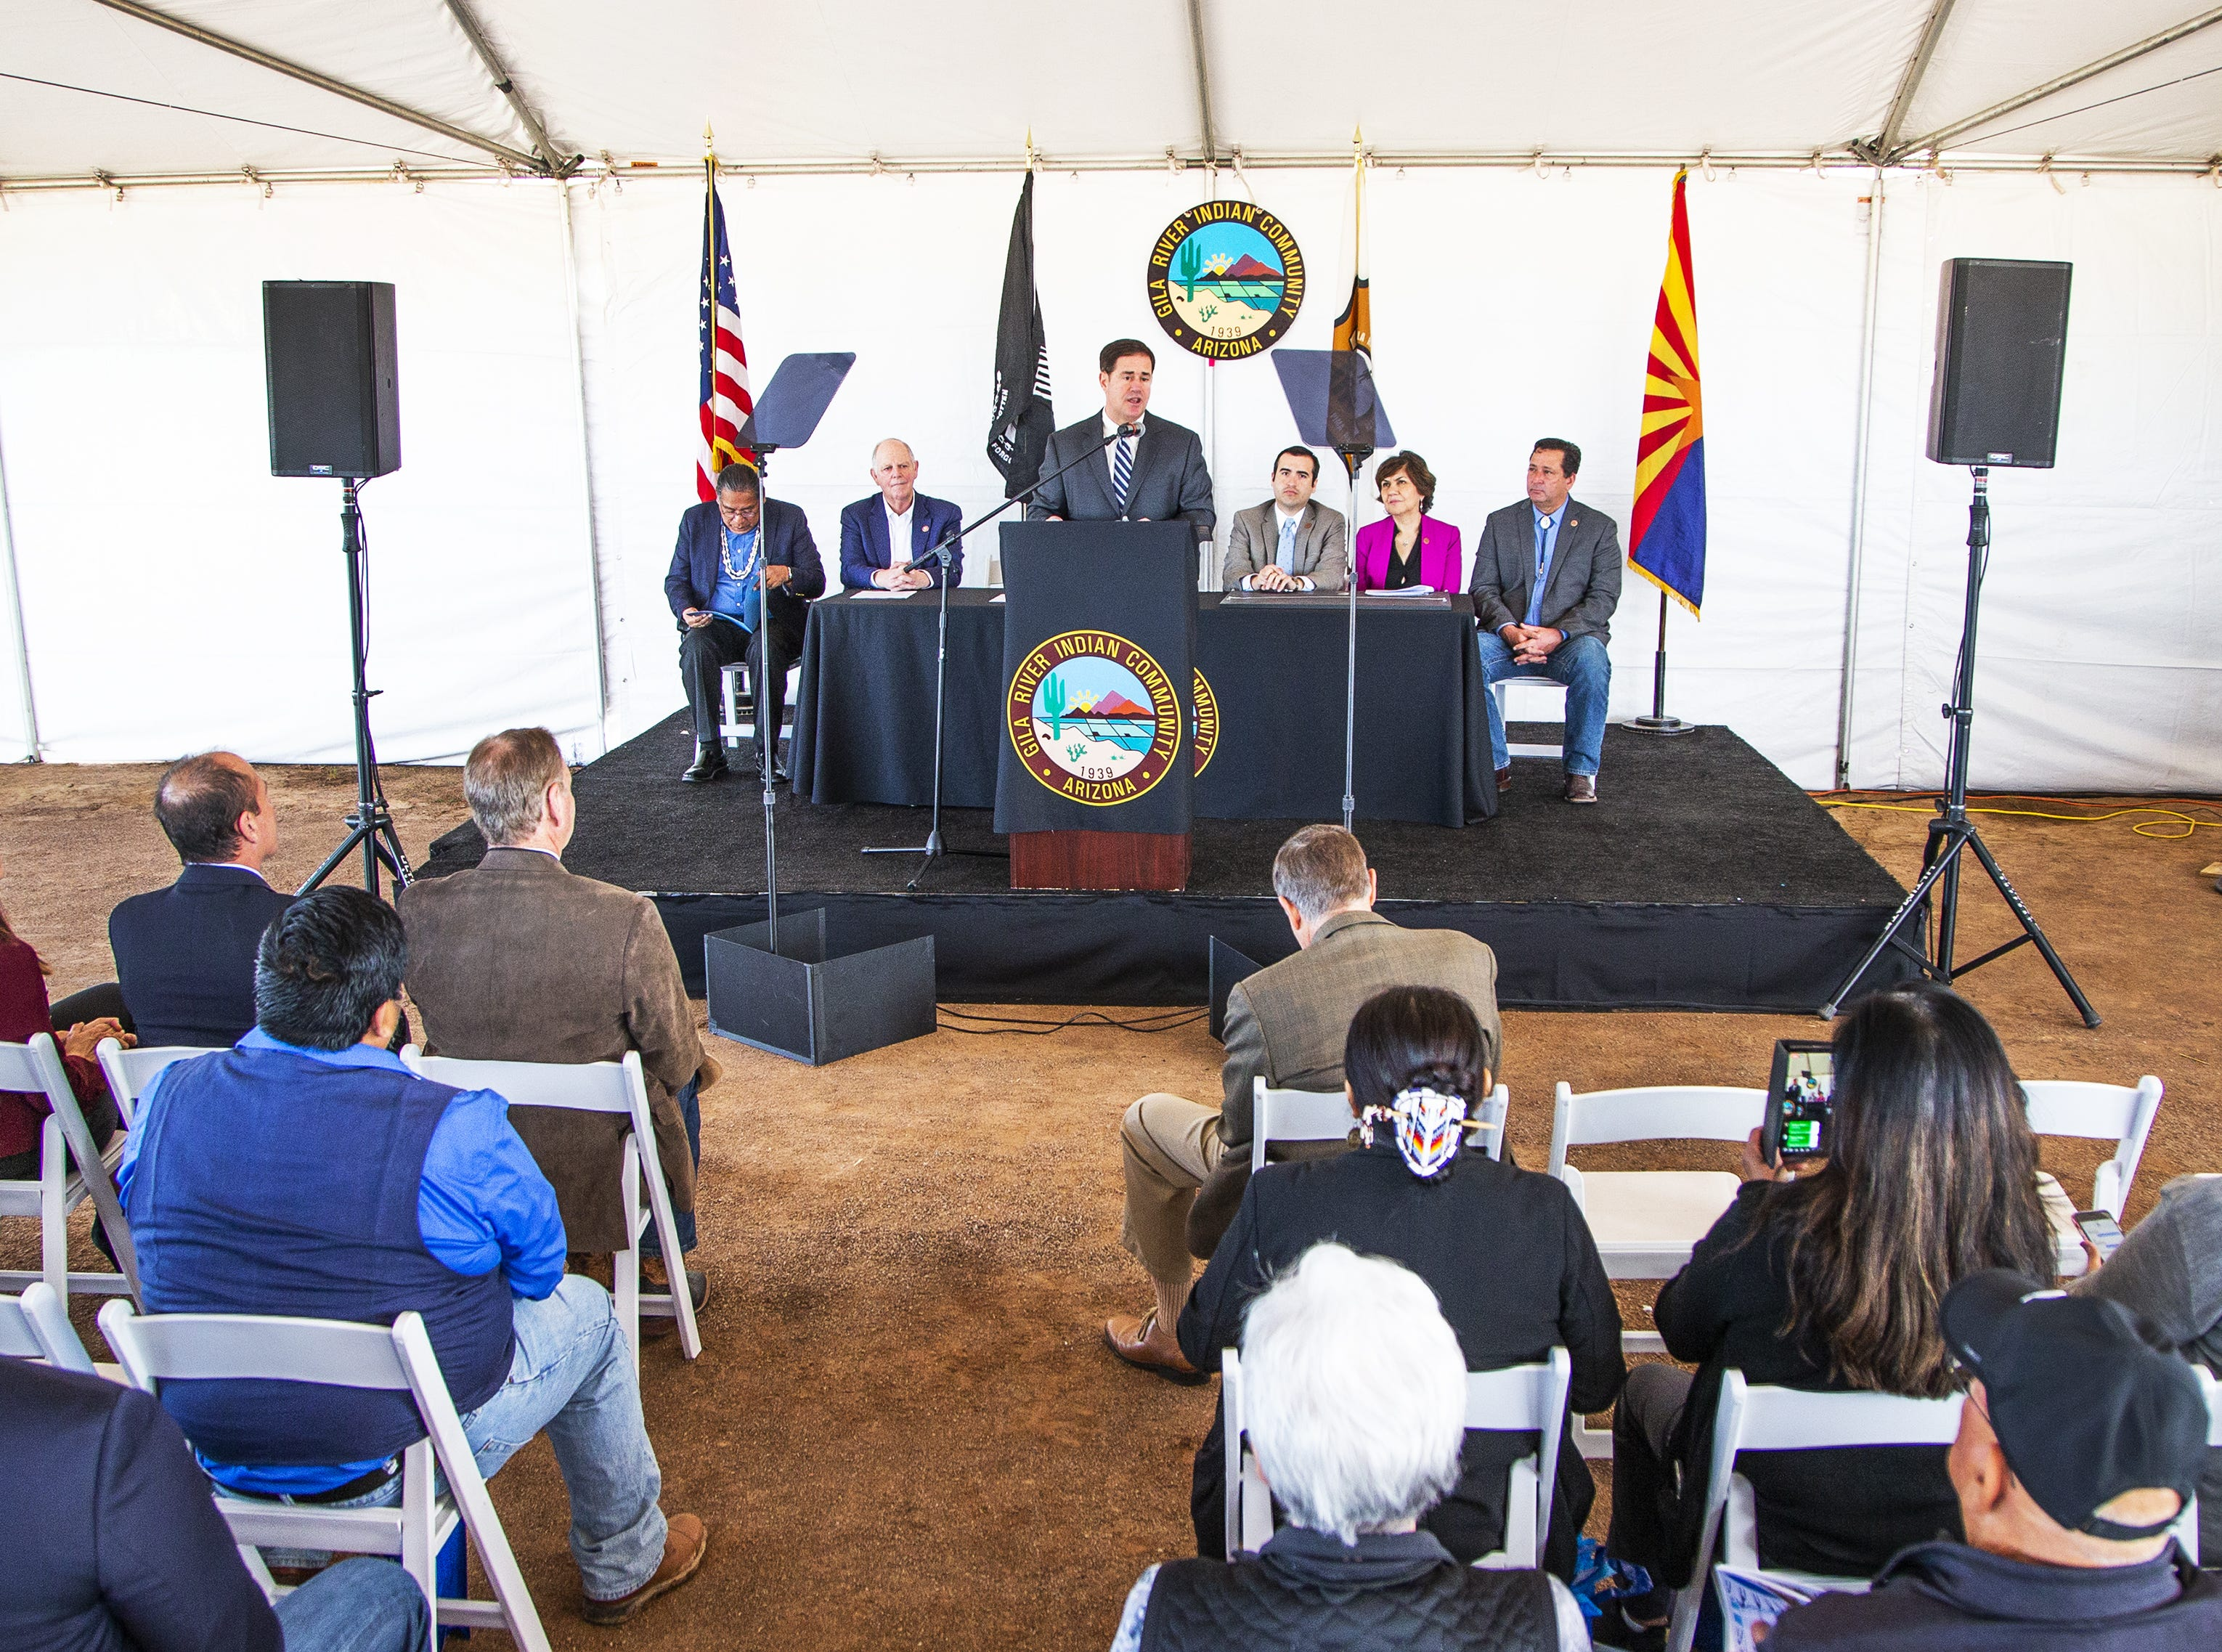 Gov. Doug Ducey makes remarks to the crowd at the MAR 5 Interpretive Trail grand opening ceremony near Sacaton, Friday, March 1, 2019.